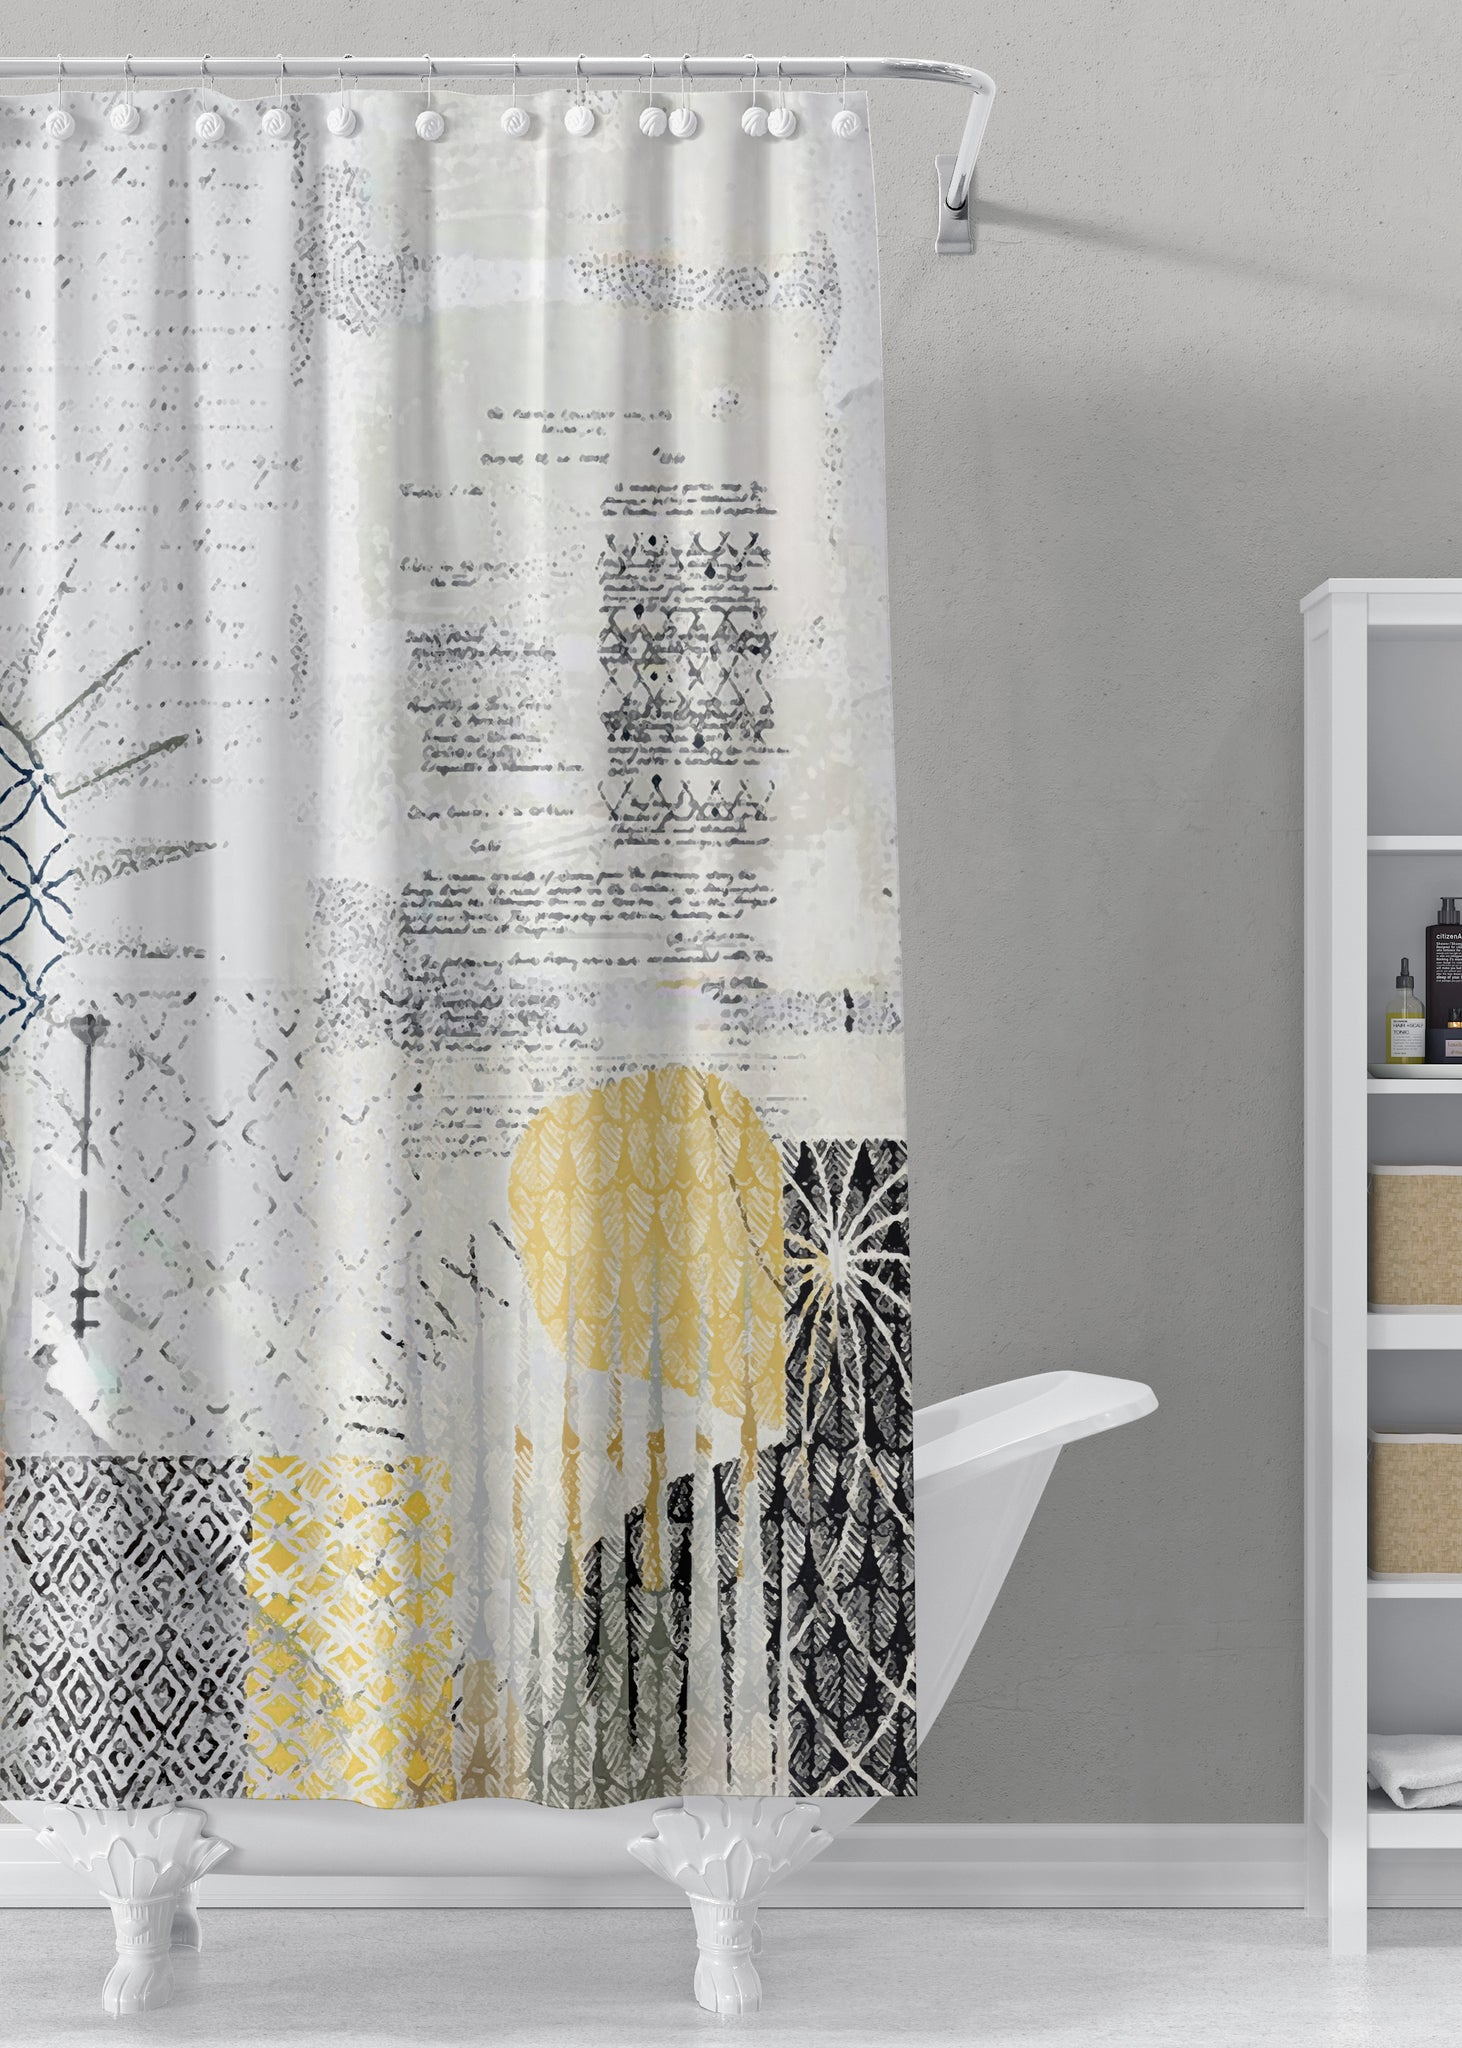 Morning Designer Shower Curtain by Sheree Burlington